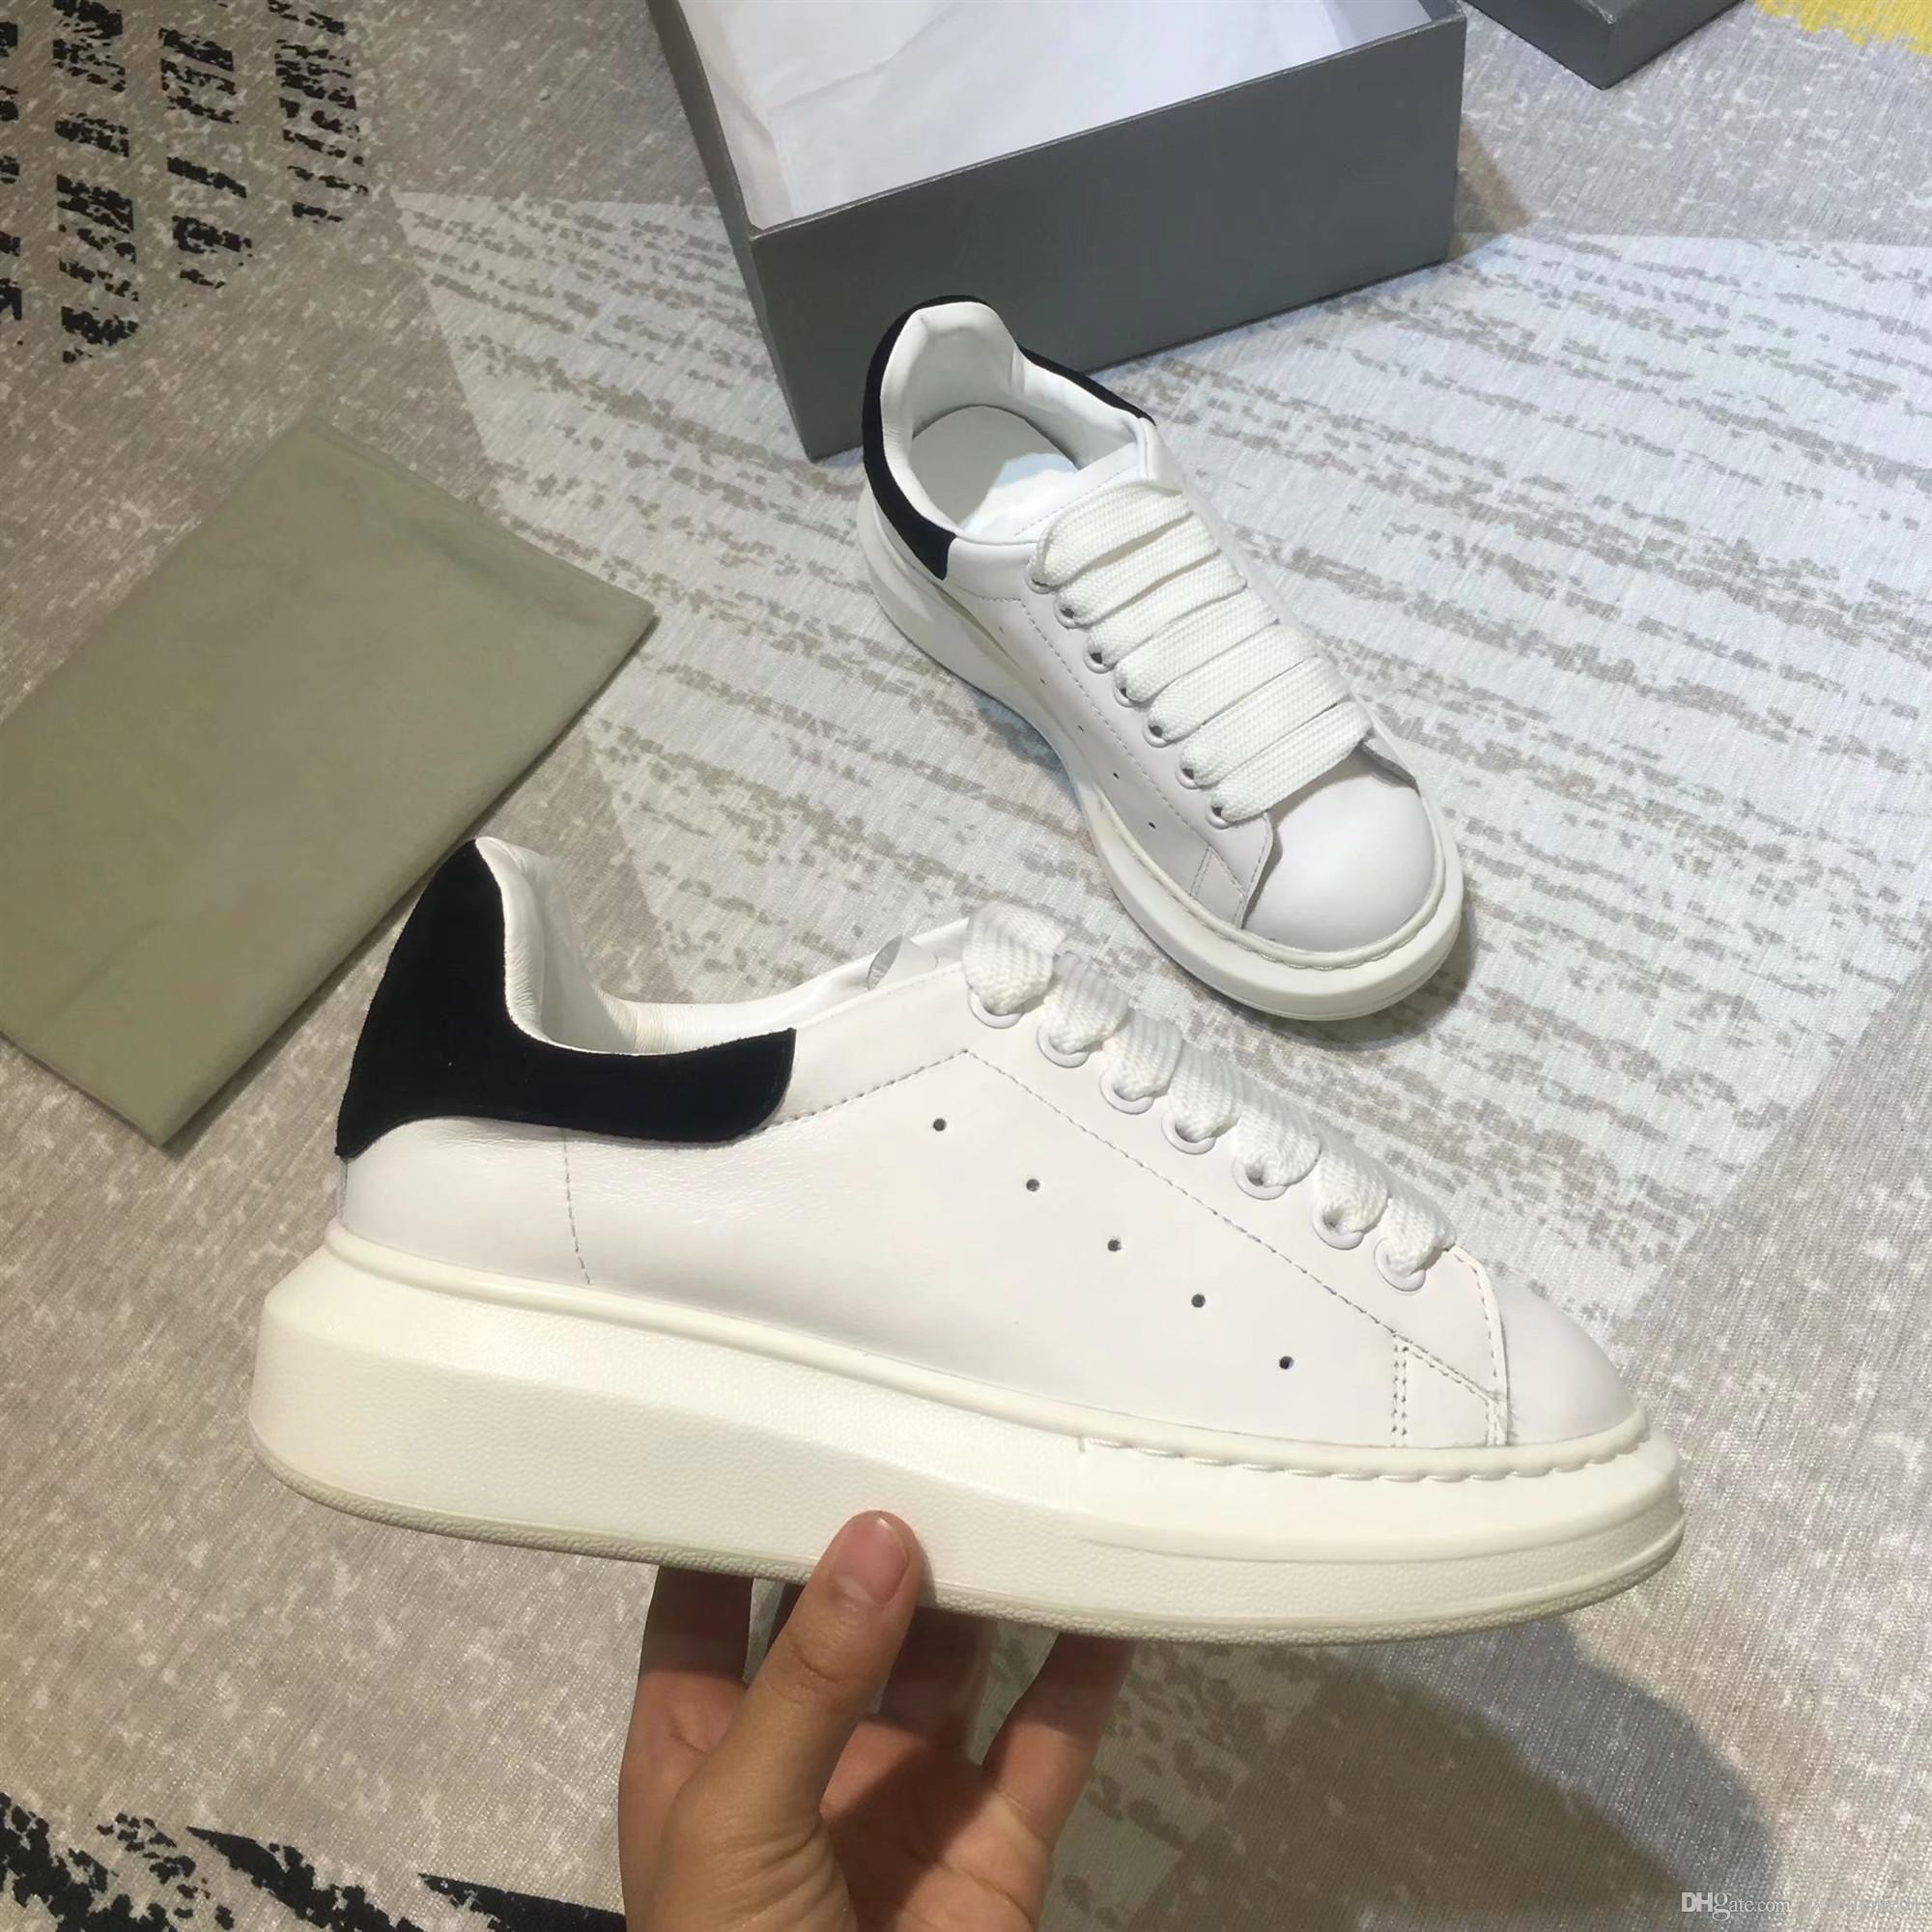 e9539e43830 Fashion Luxury Designer Shoes Womens Mens Trainers Best Leather Platform  Shoes Flat Casual Party Wedding Shoes Suede Sports Sneakers Loveres Navy  Shoes Blue ...